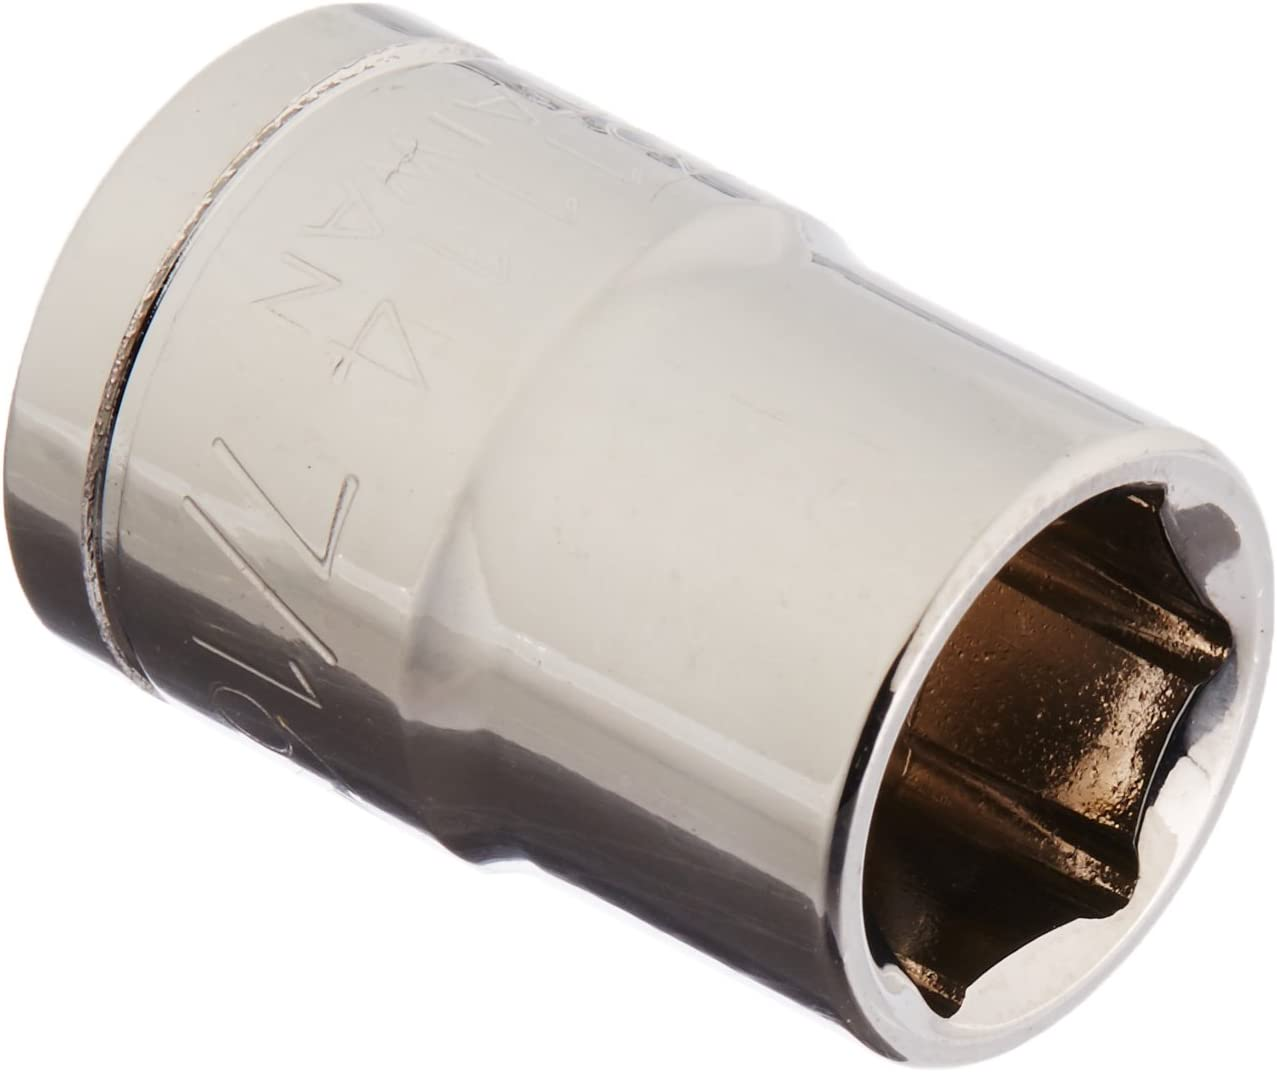 Williams 31114 7//16 Shallow 6-Point Socket with 3//8-Inch Drive JH Williams Tool Group